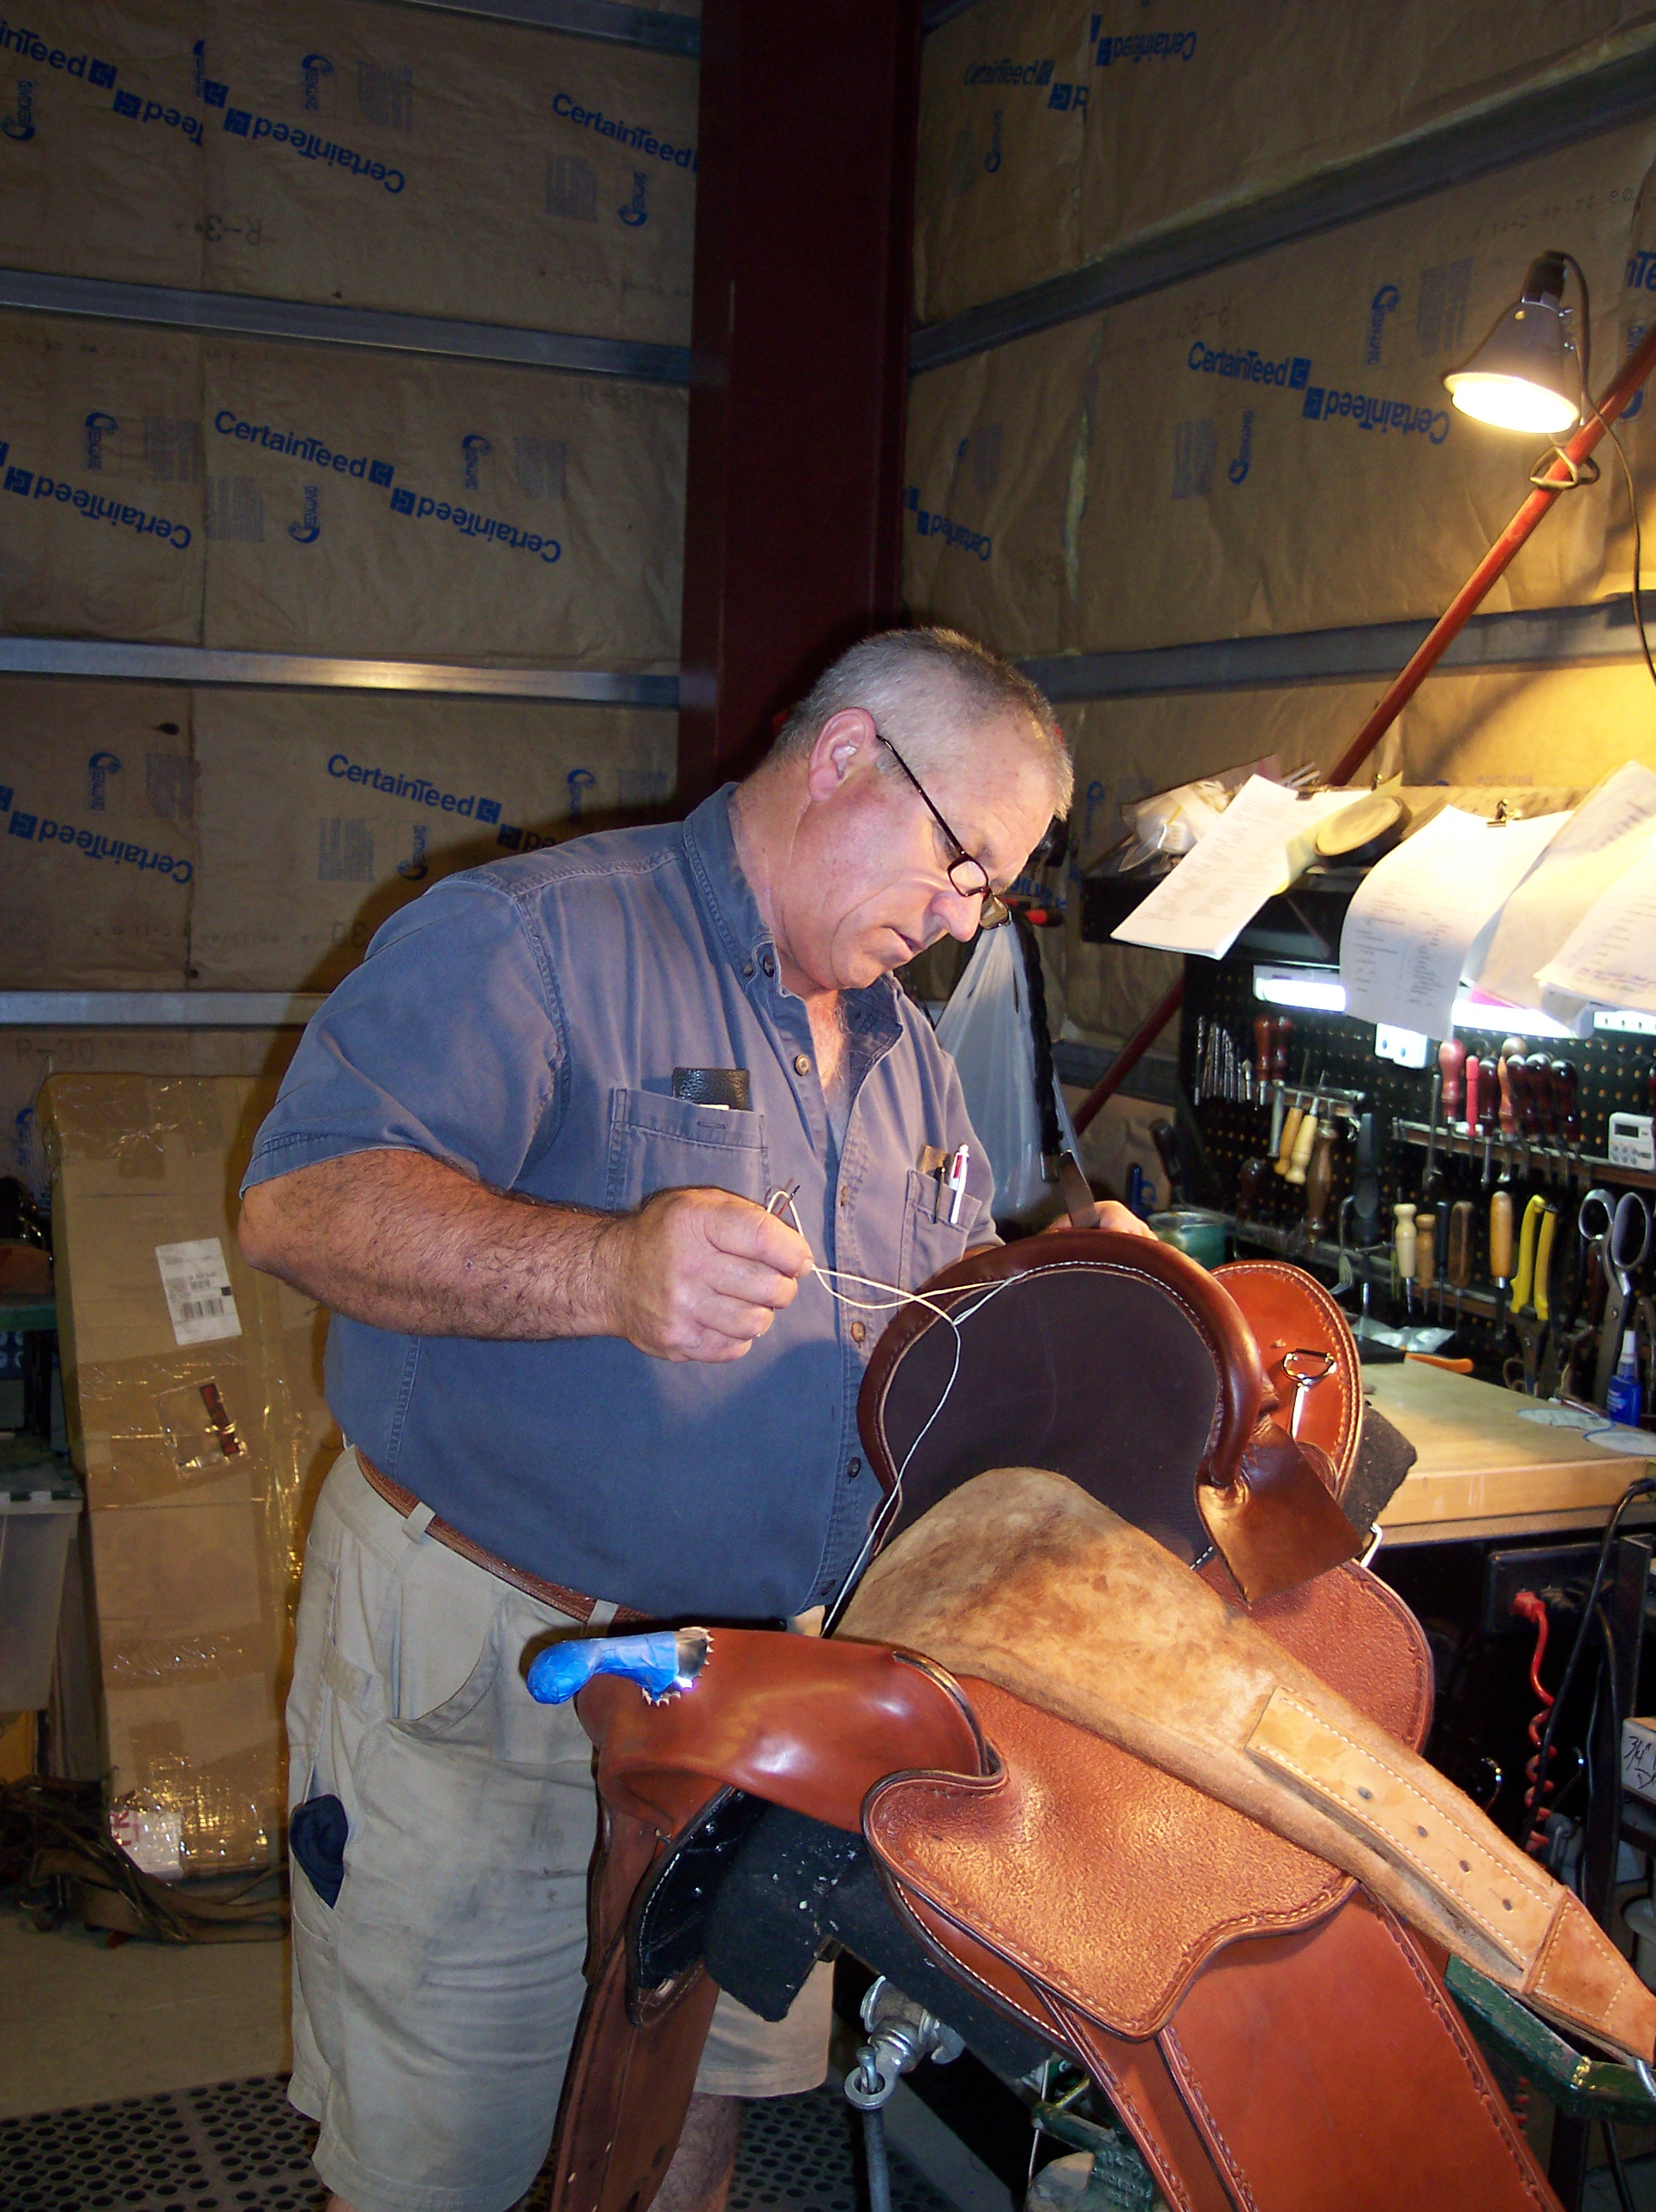 This is Boz making one of his saddles.